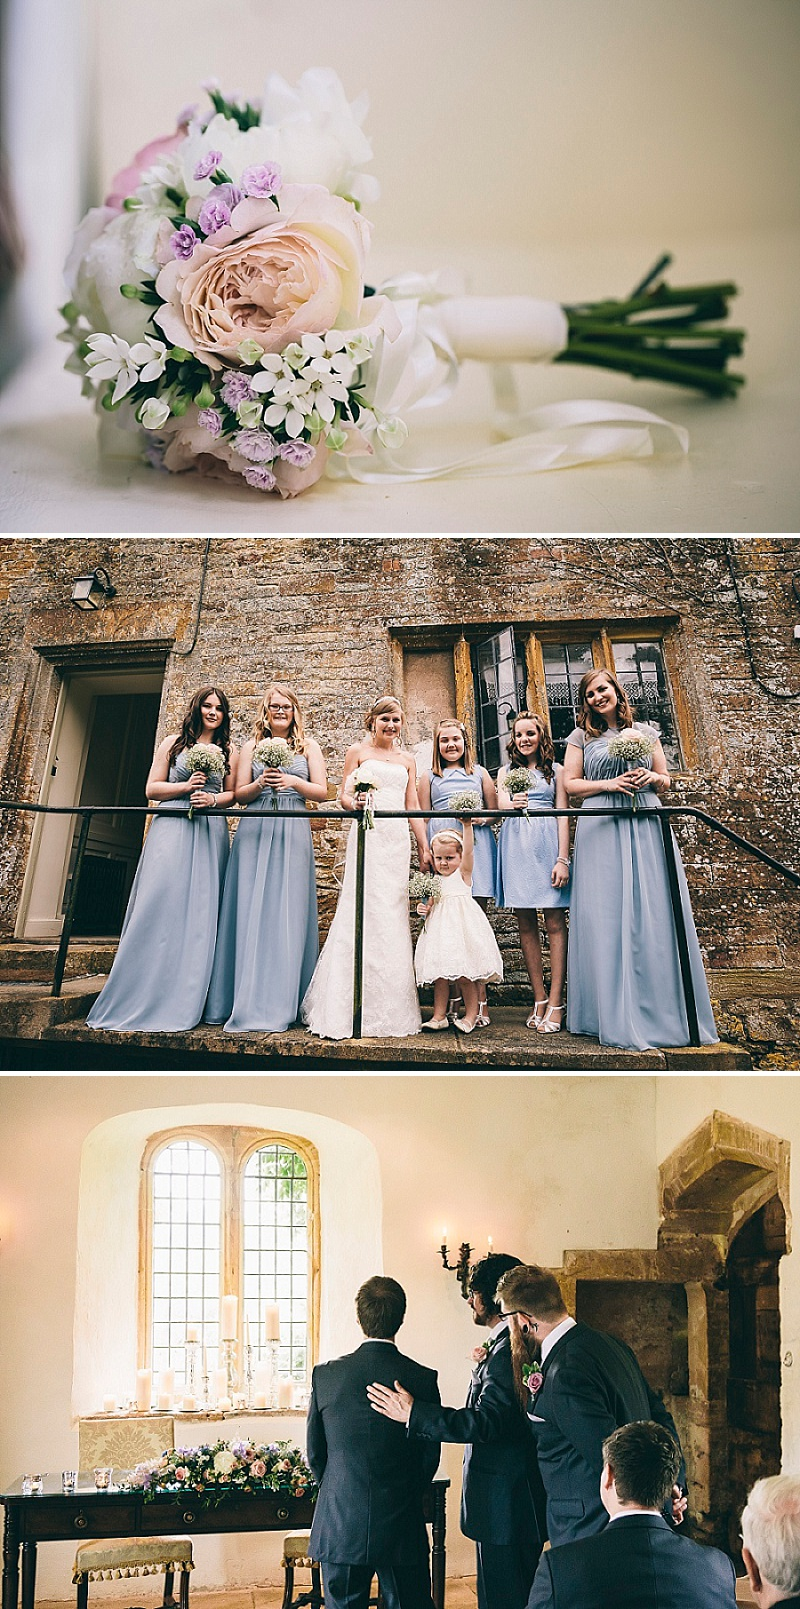 Elegant Wedding At Brympton House In Somerset With A Duck Egg Blue Colour Scheme With Bride In Gown From Prima Moda And Groom In Suit From Moss With Images From How Photography 2